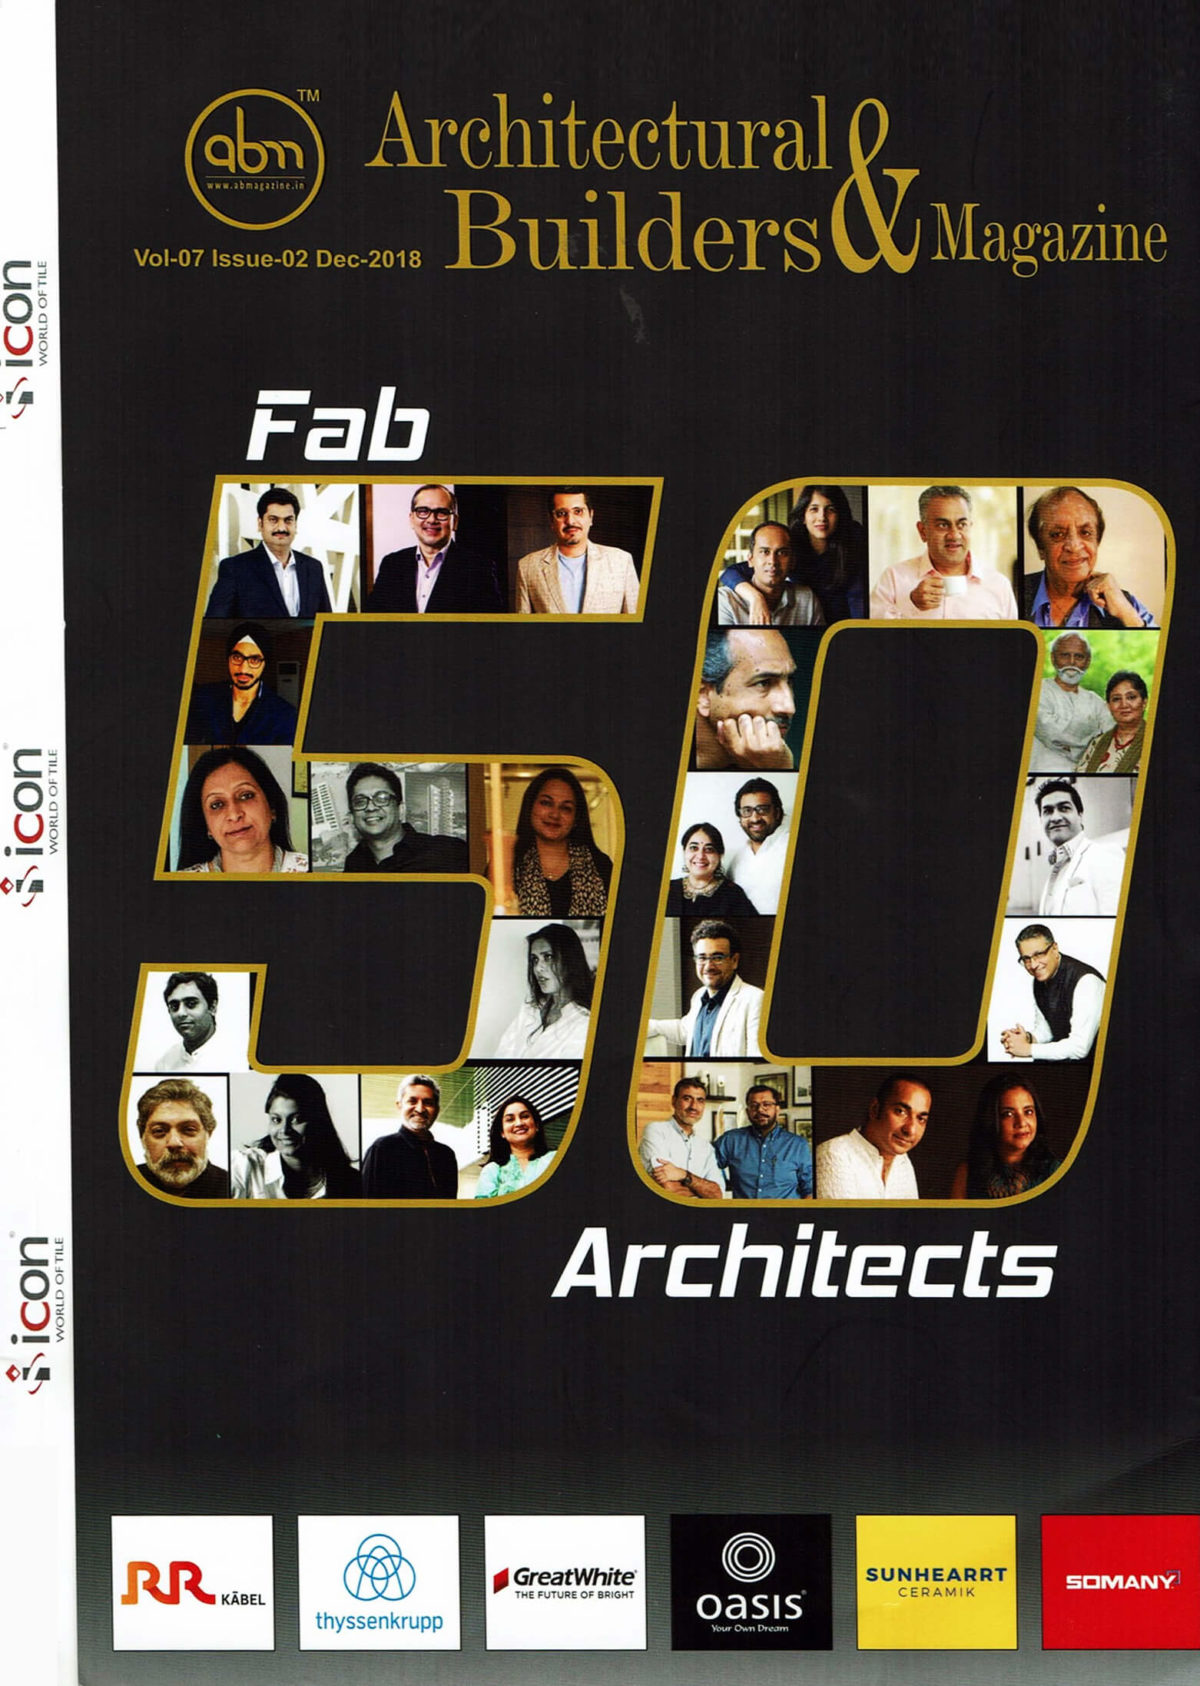 FAB 50 ARCHITECTS - PAVITRA SRIPRAKASH OF SHILPA ARCHITECTS